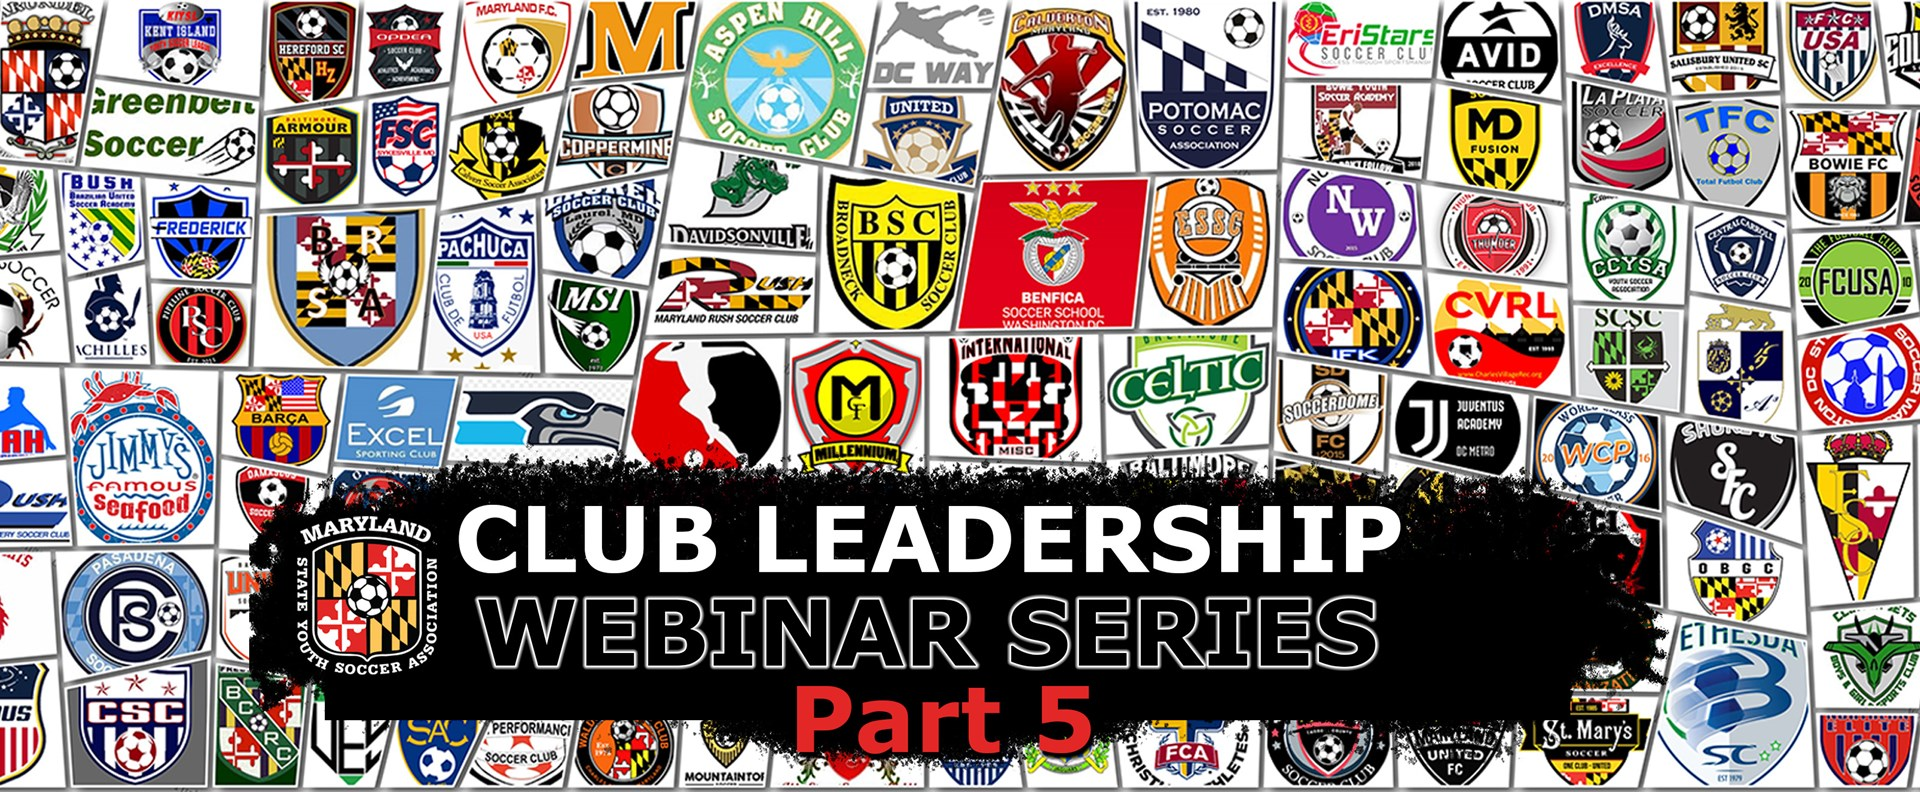 Club_Leadership_Webinar_Series_Thumbnail_PT_5